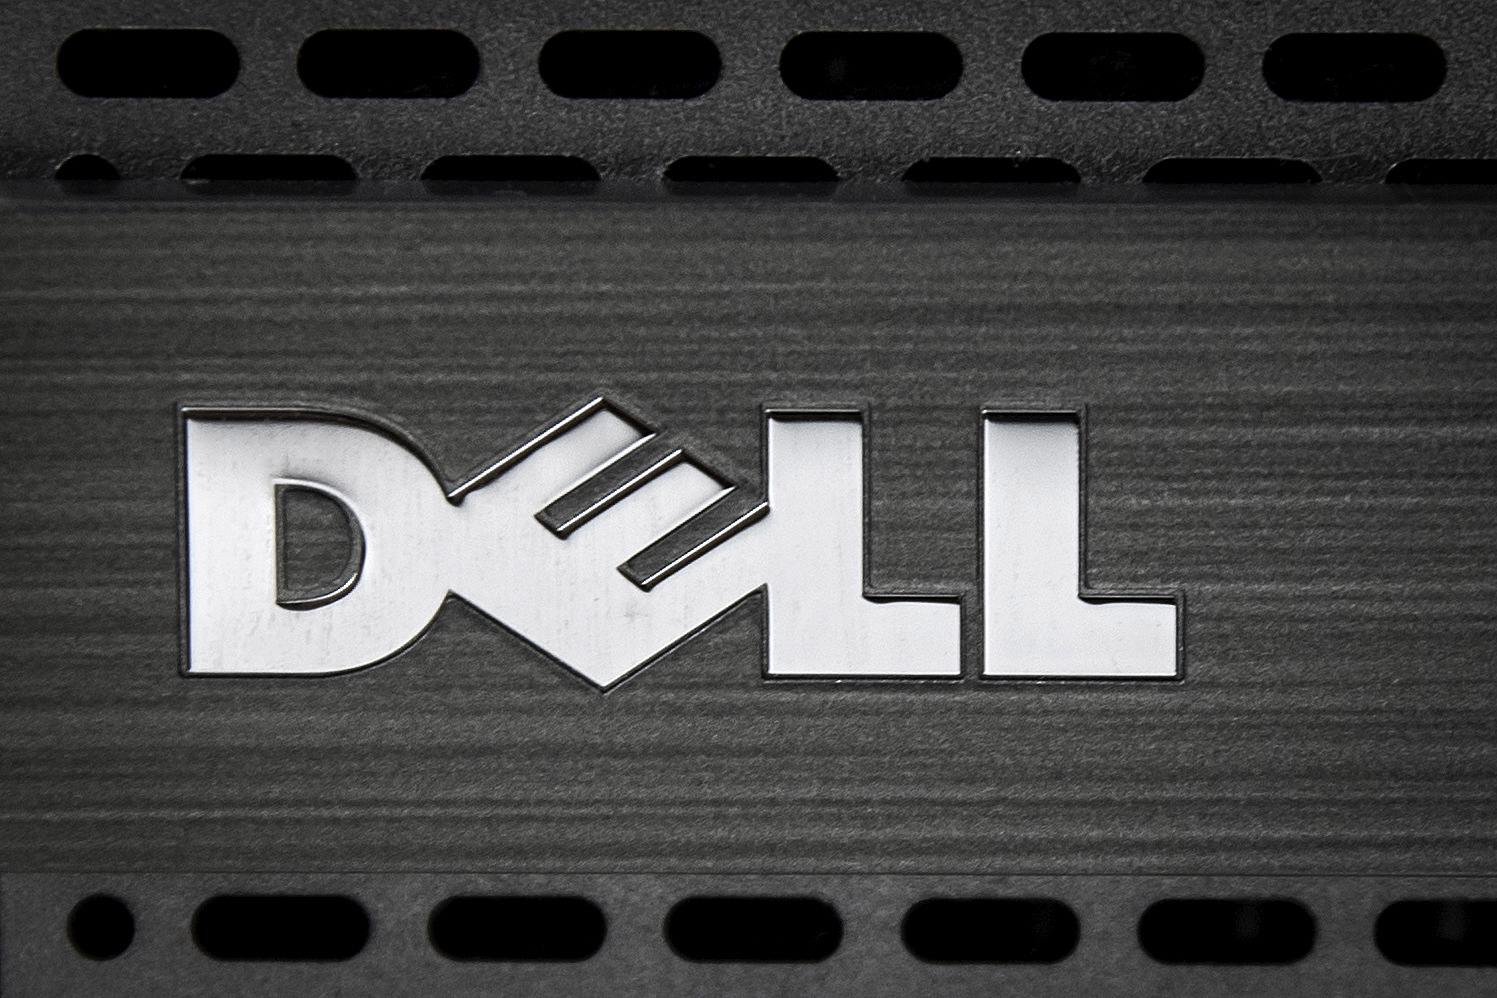 Dell driver vulnerability affects hundreds of millions of PCs | Engadget